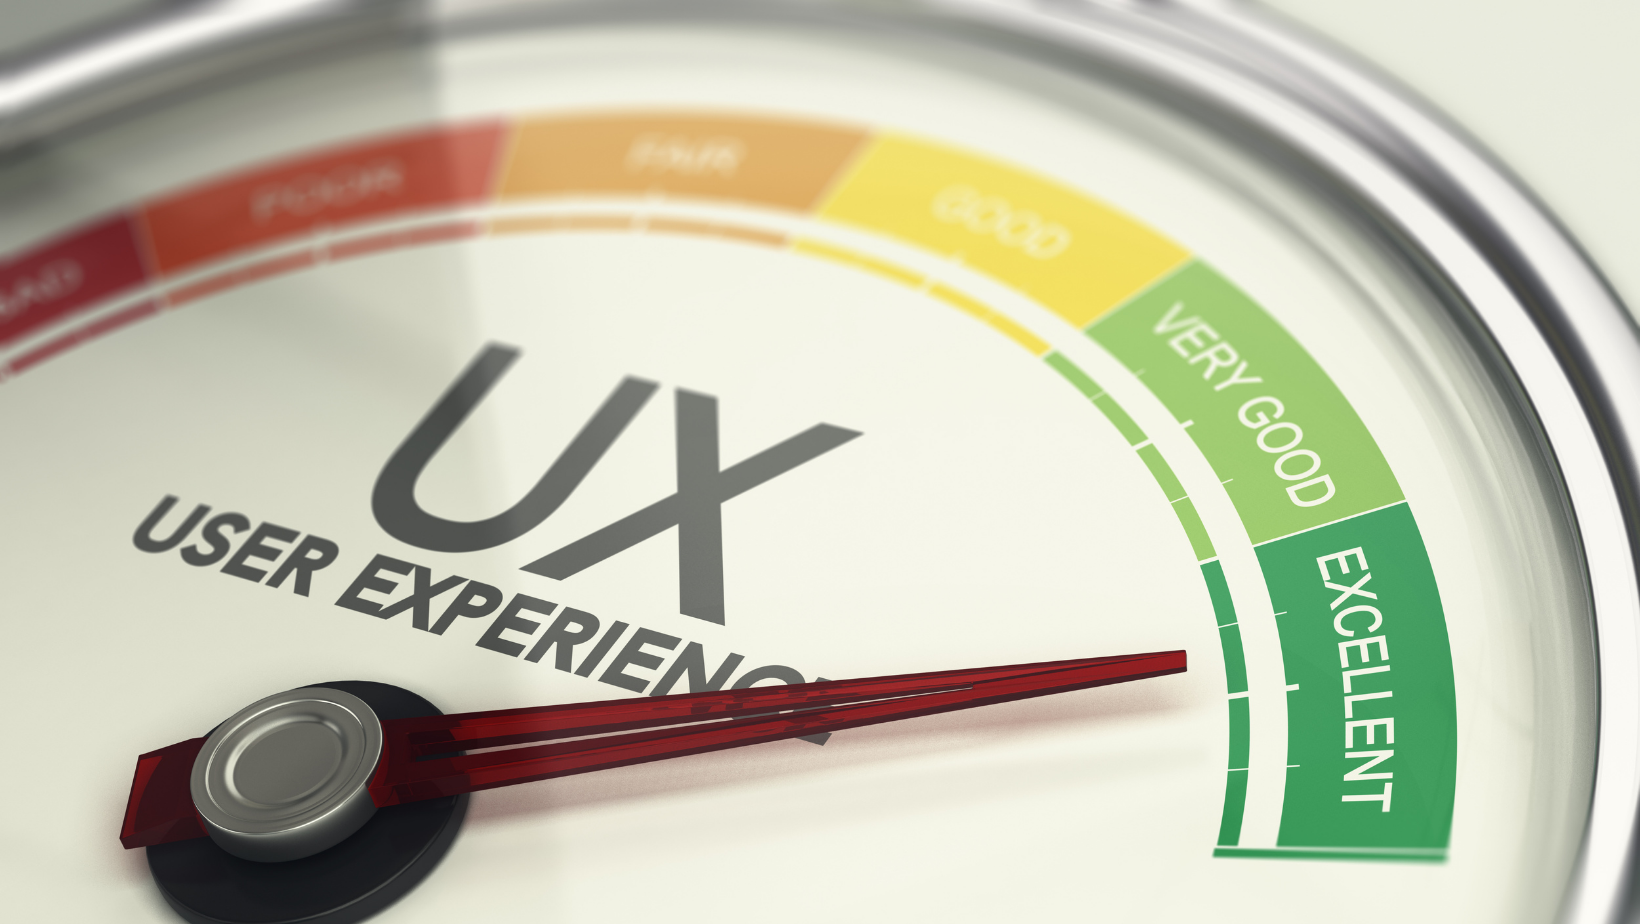 user experience enginuity